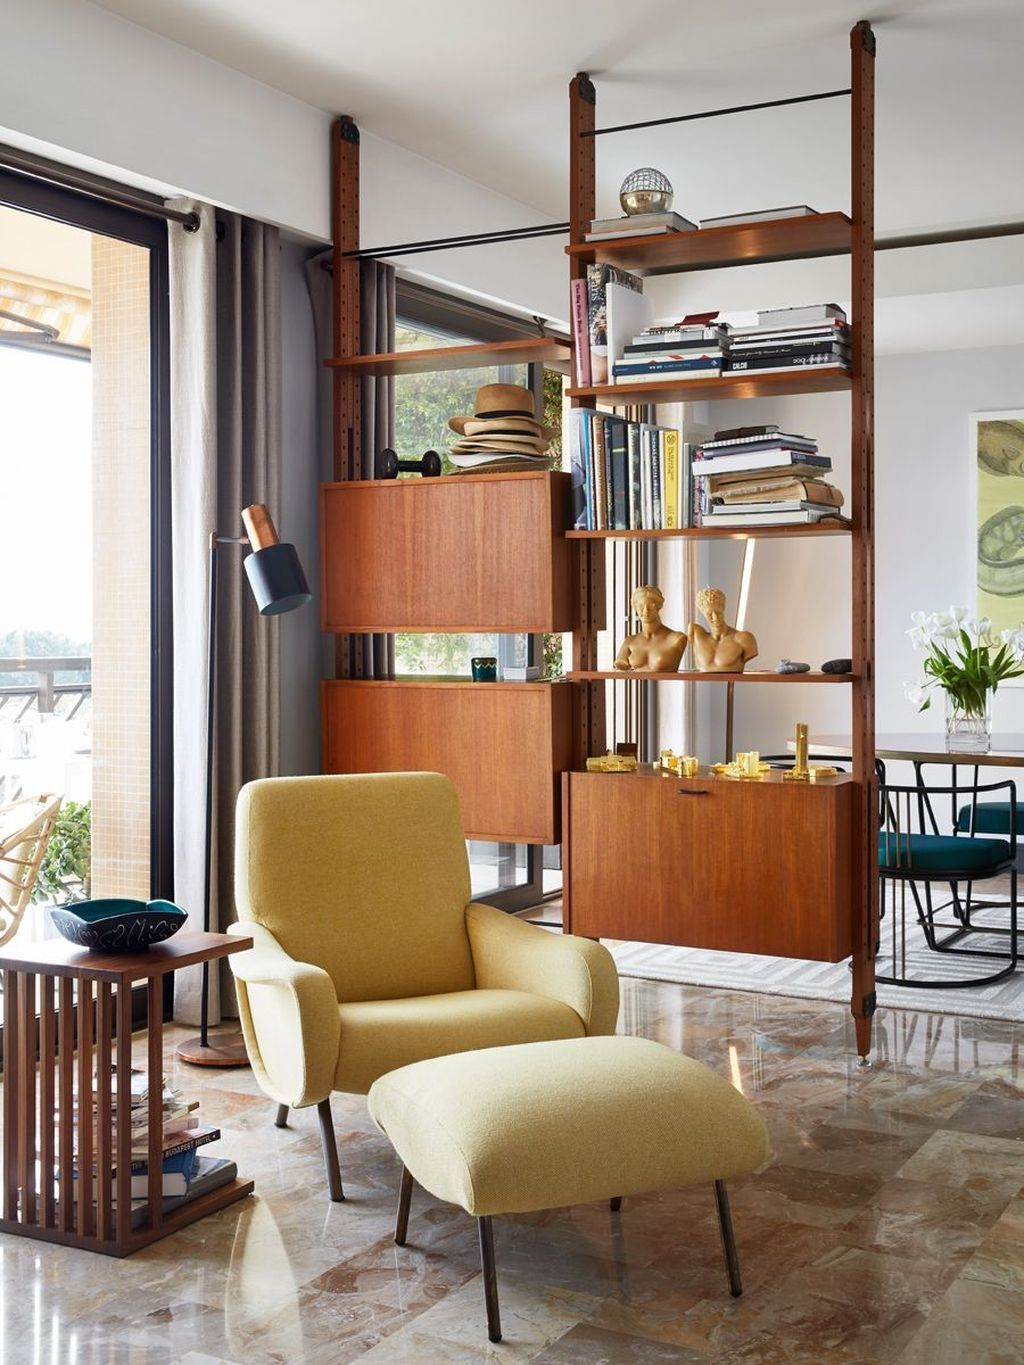 Tips for getting the most out of home improvement modern interior design mid century kitchen style also rh pinterest